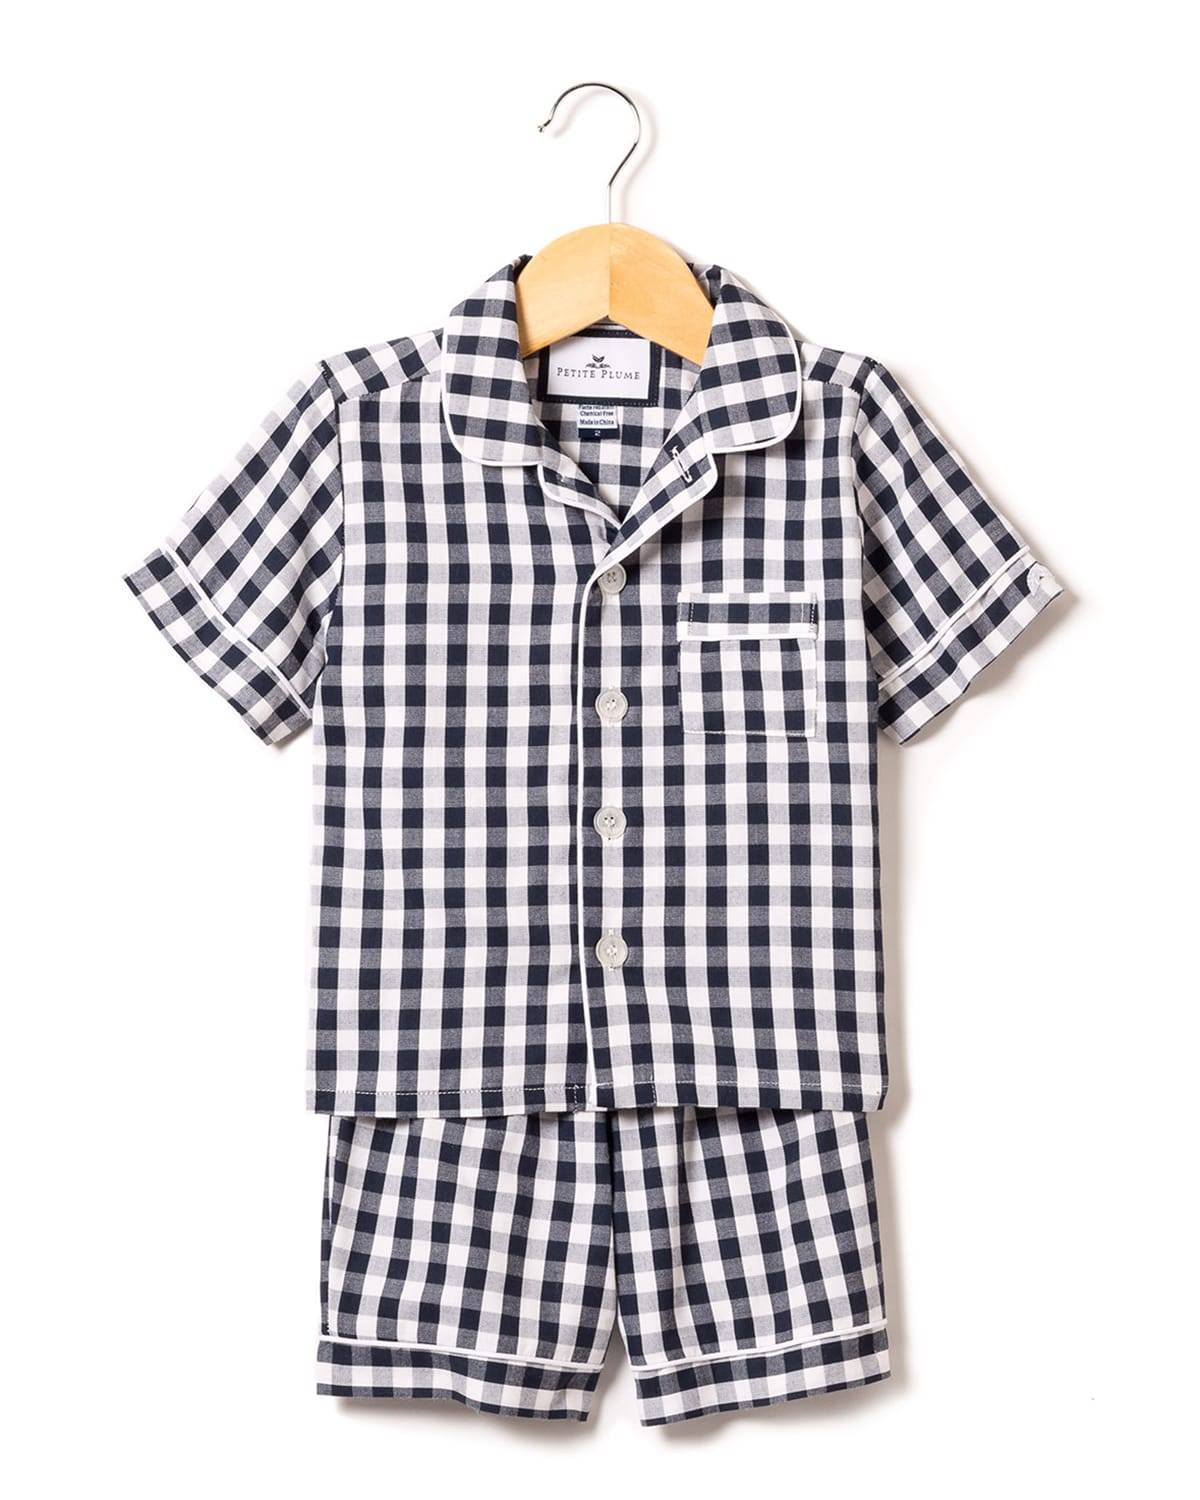 Kid's Gingham Twill Pajama Set w/ Contrast Piping, Size 6M-14 - Size: 14 - NAVY GINGHAM